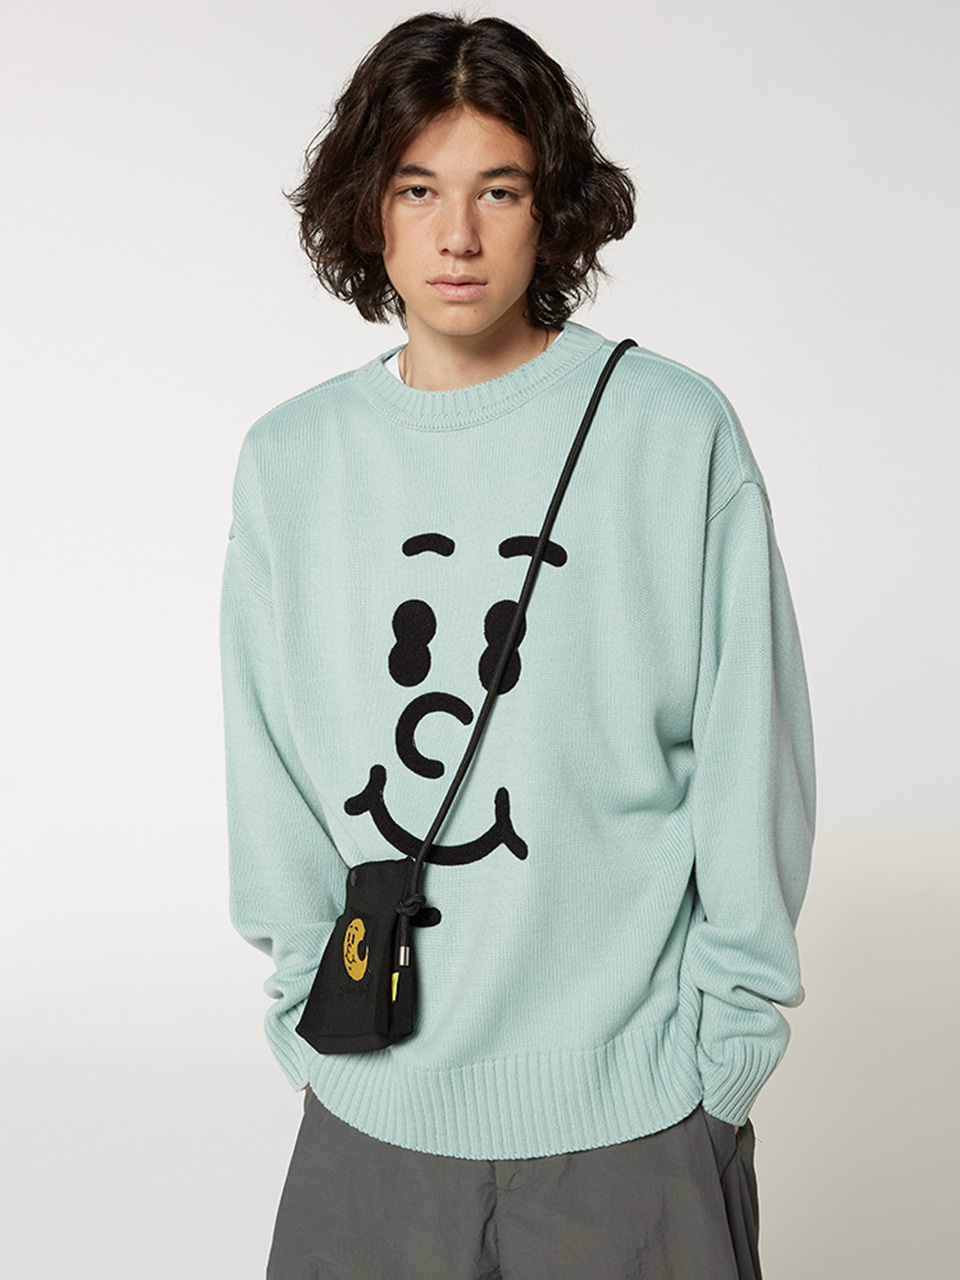 [Oct.8(Thu)Pre-order][FW20 SV X Sandomi Studio] Hucle Face Knit(Mint) STEREO-SHOP